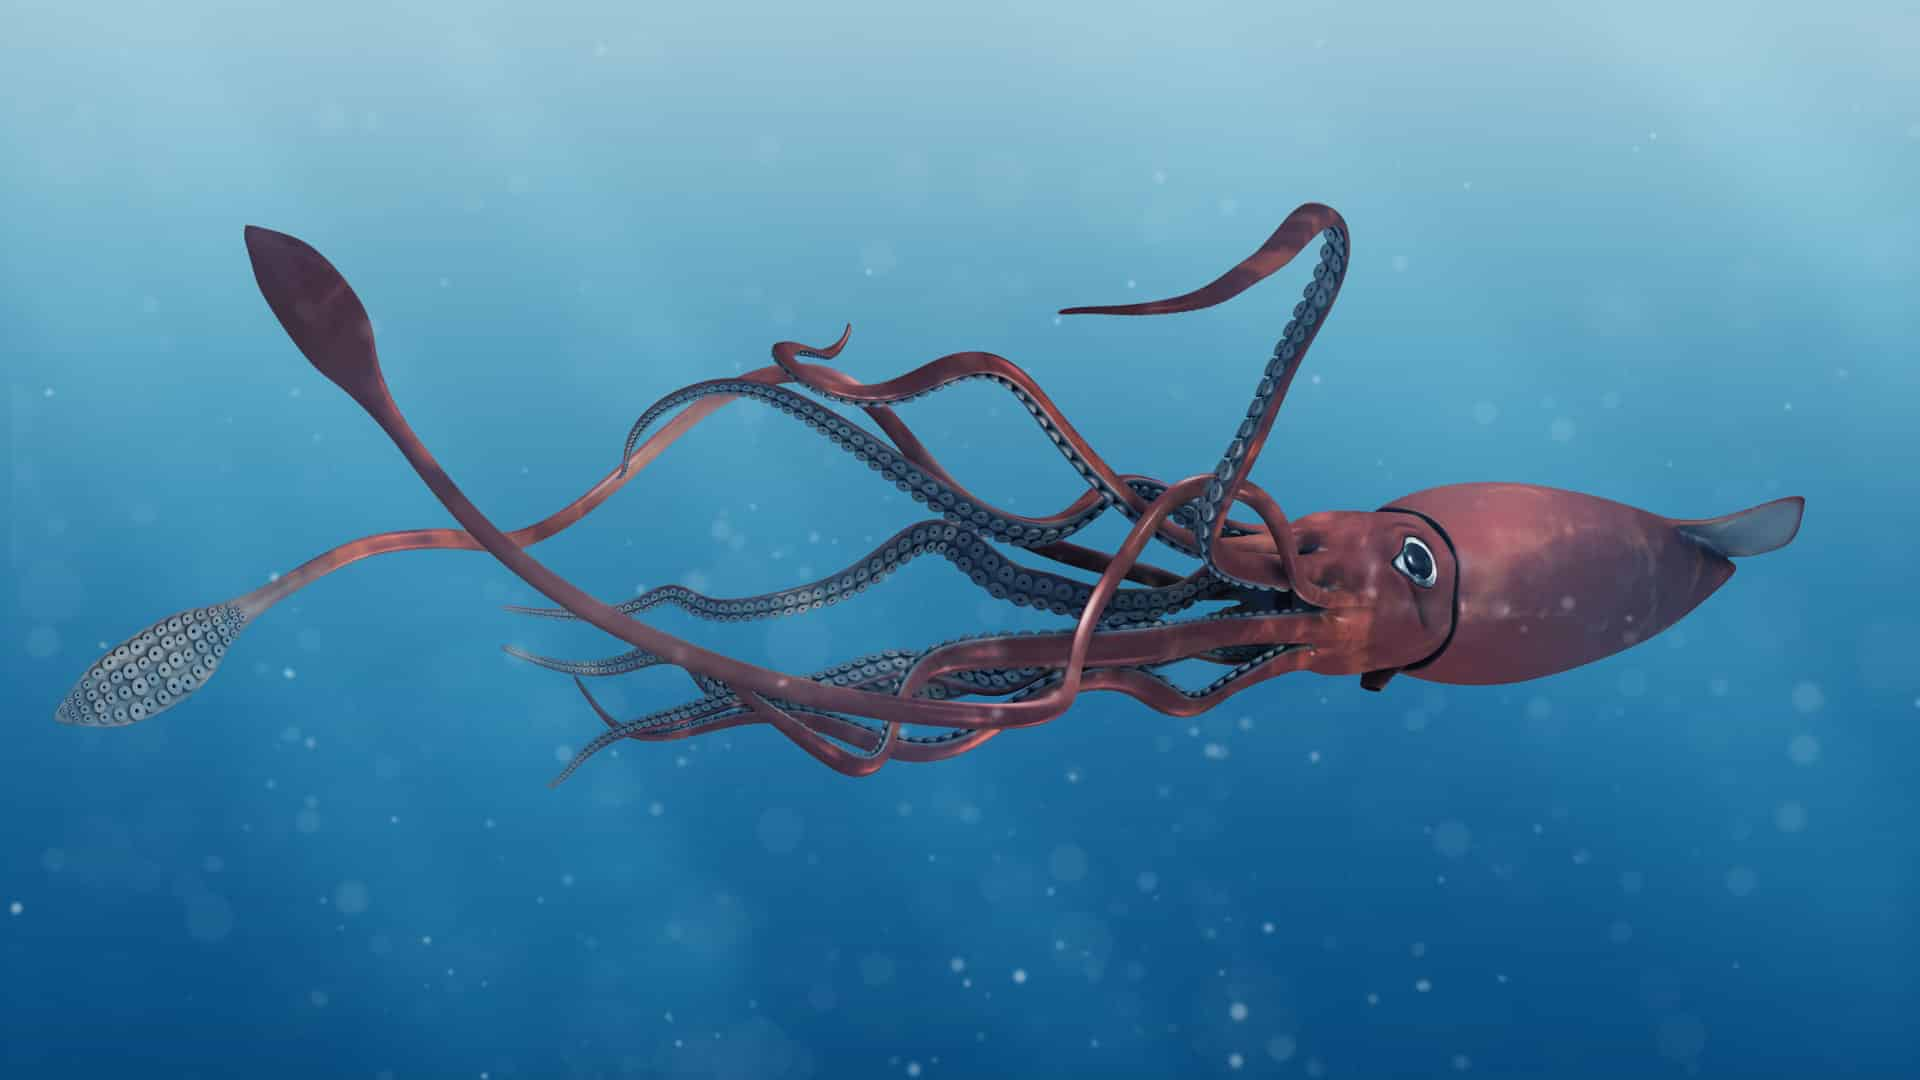 Pictures of giant squid